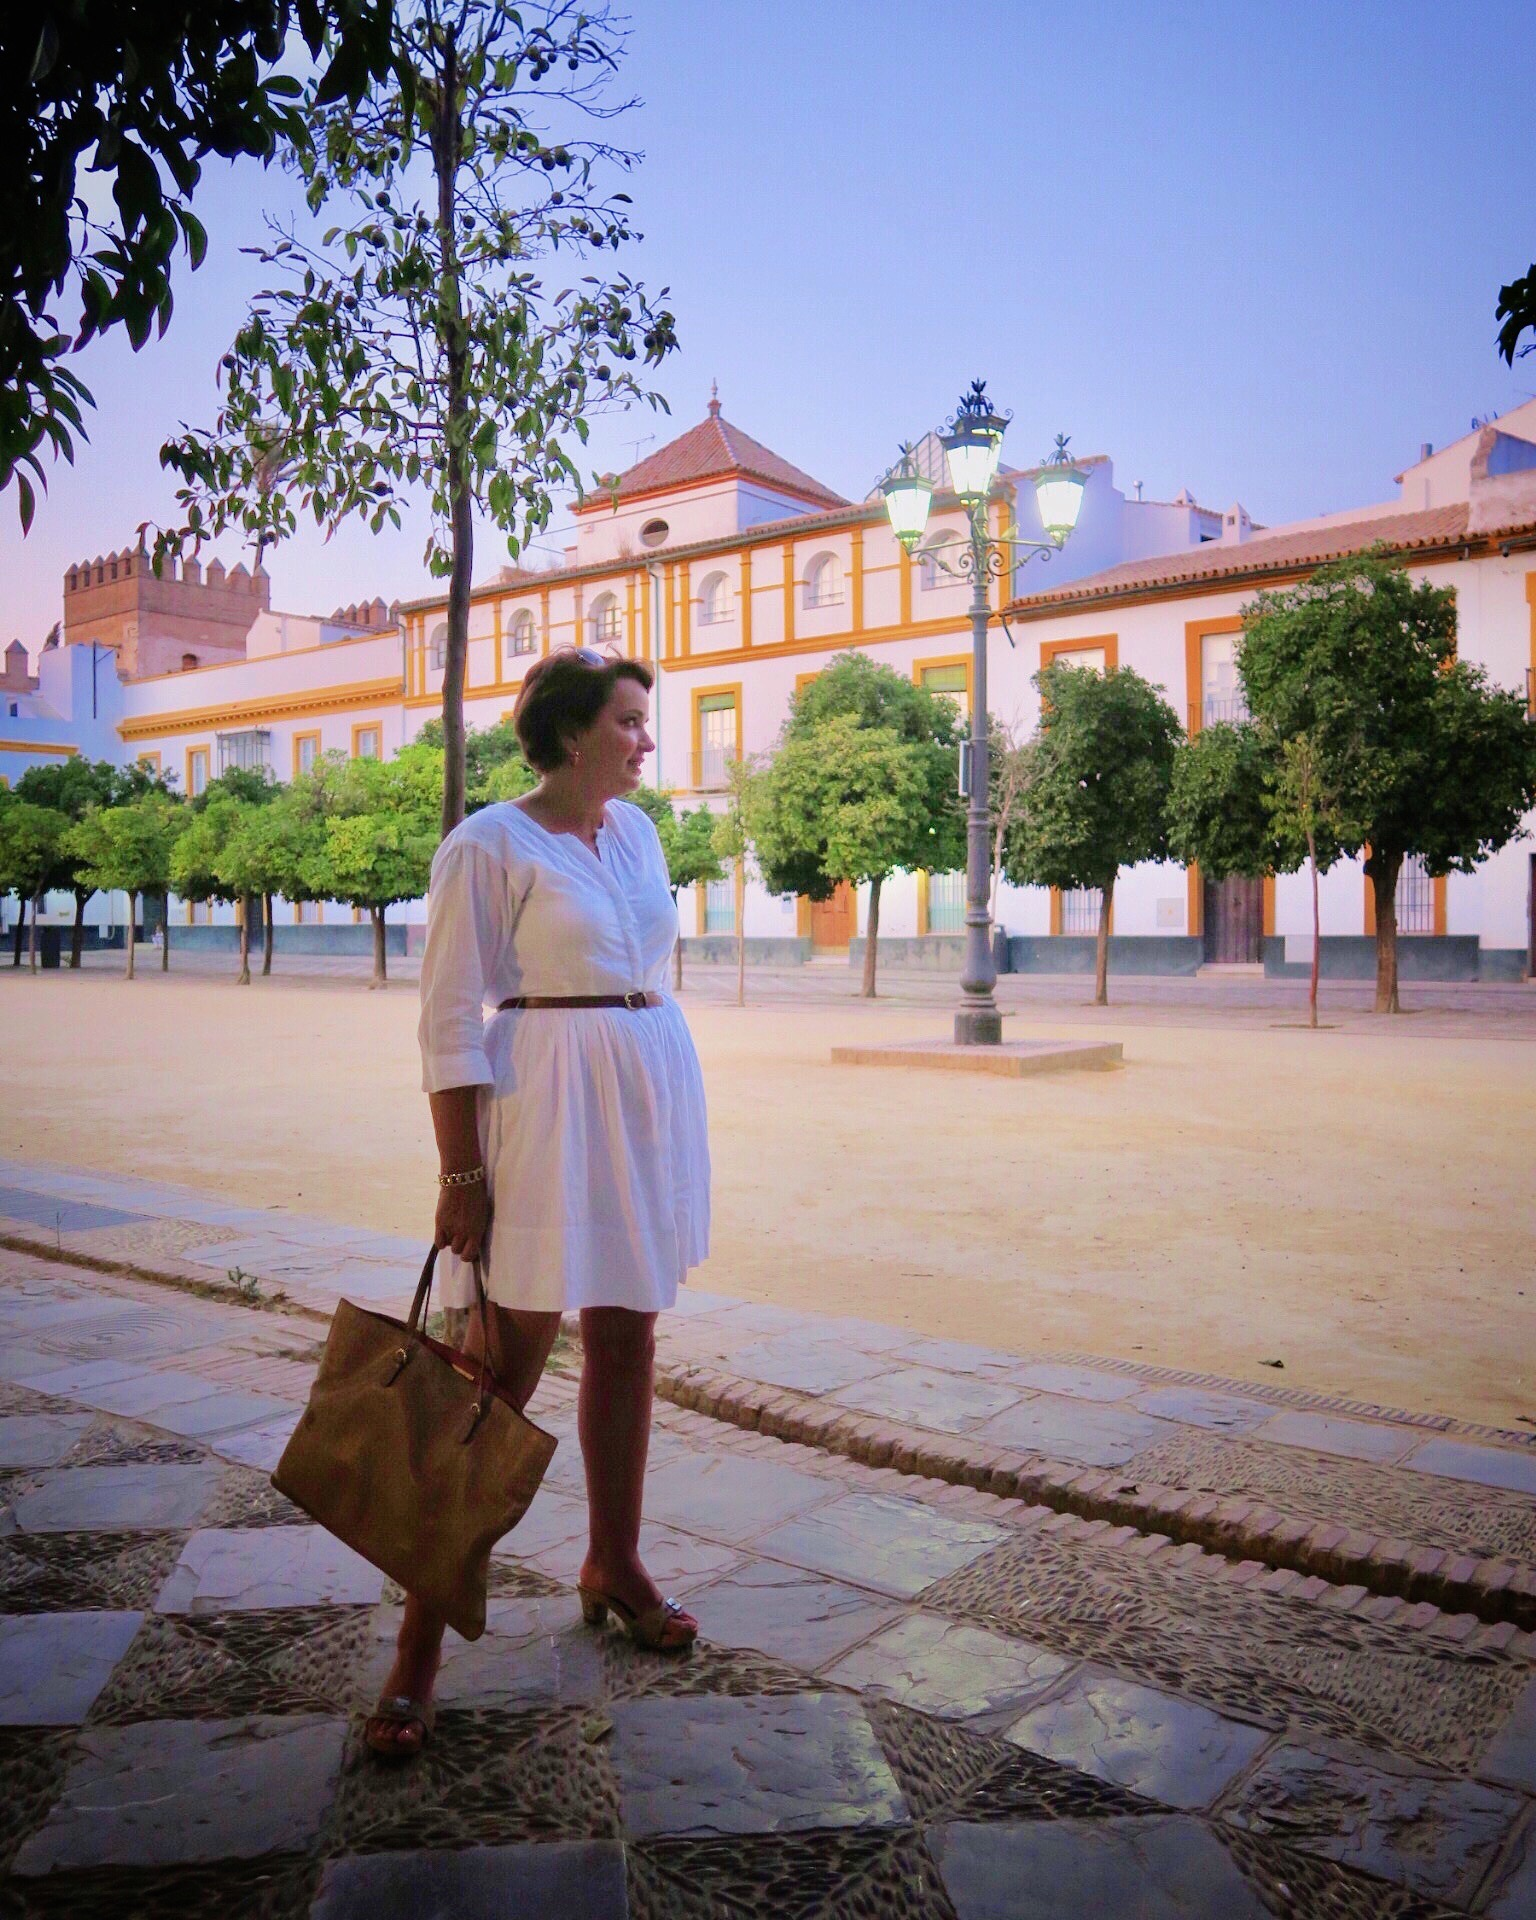 Golden hour a la Sevilla